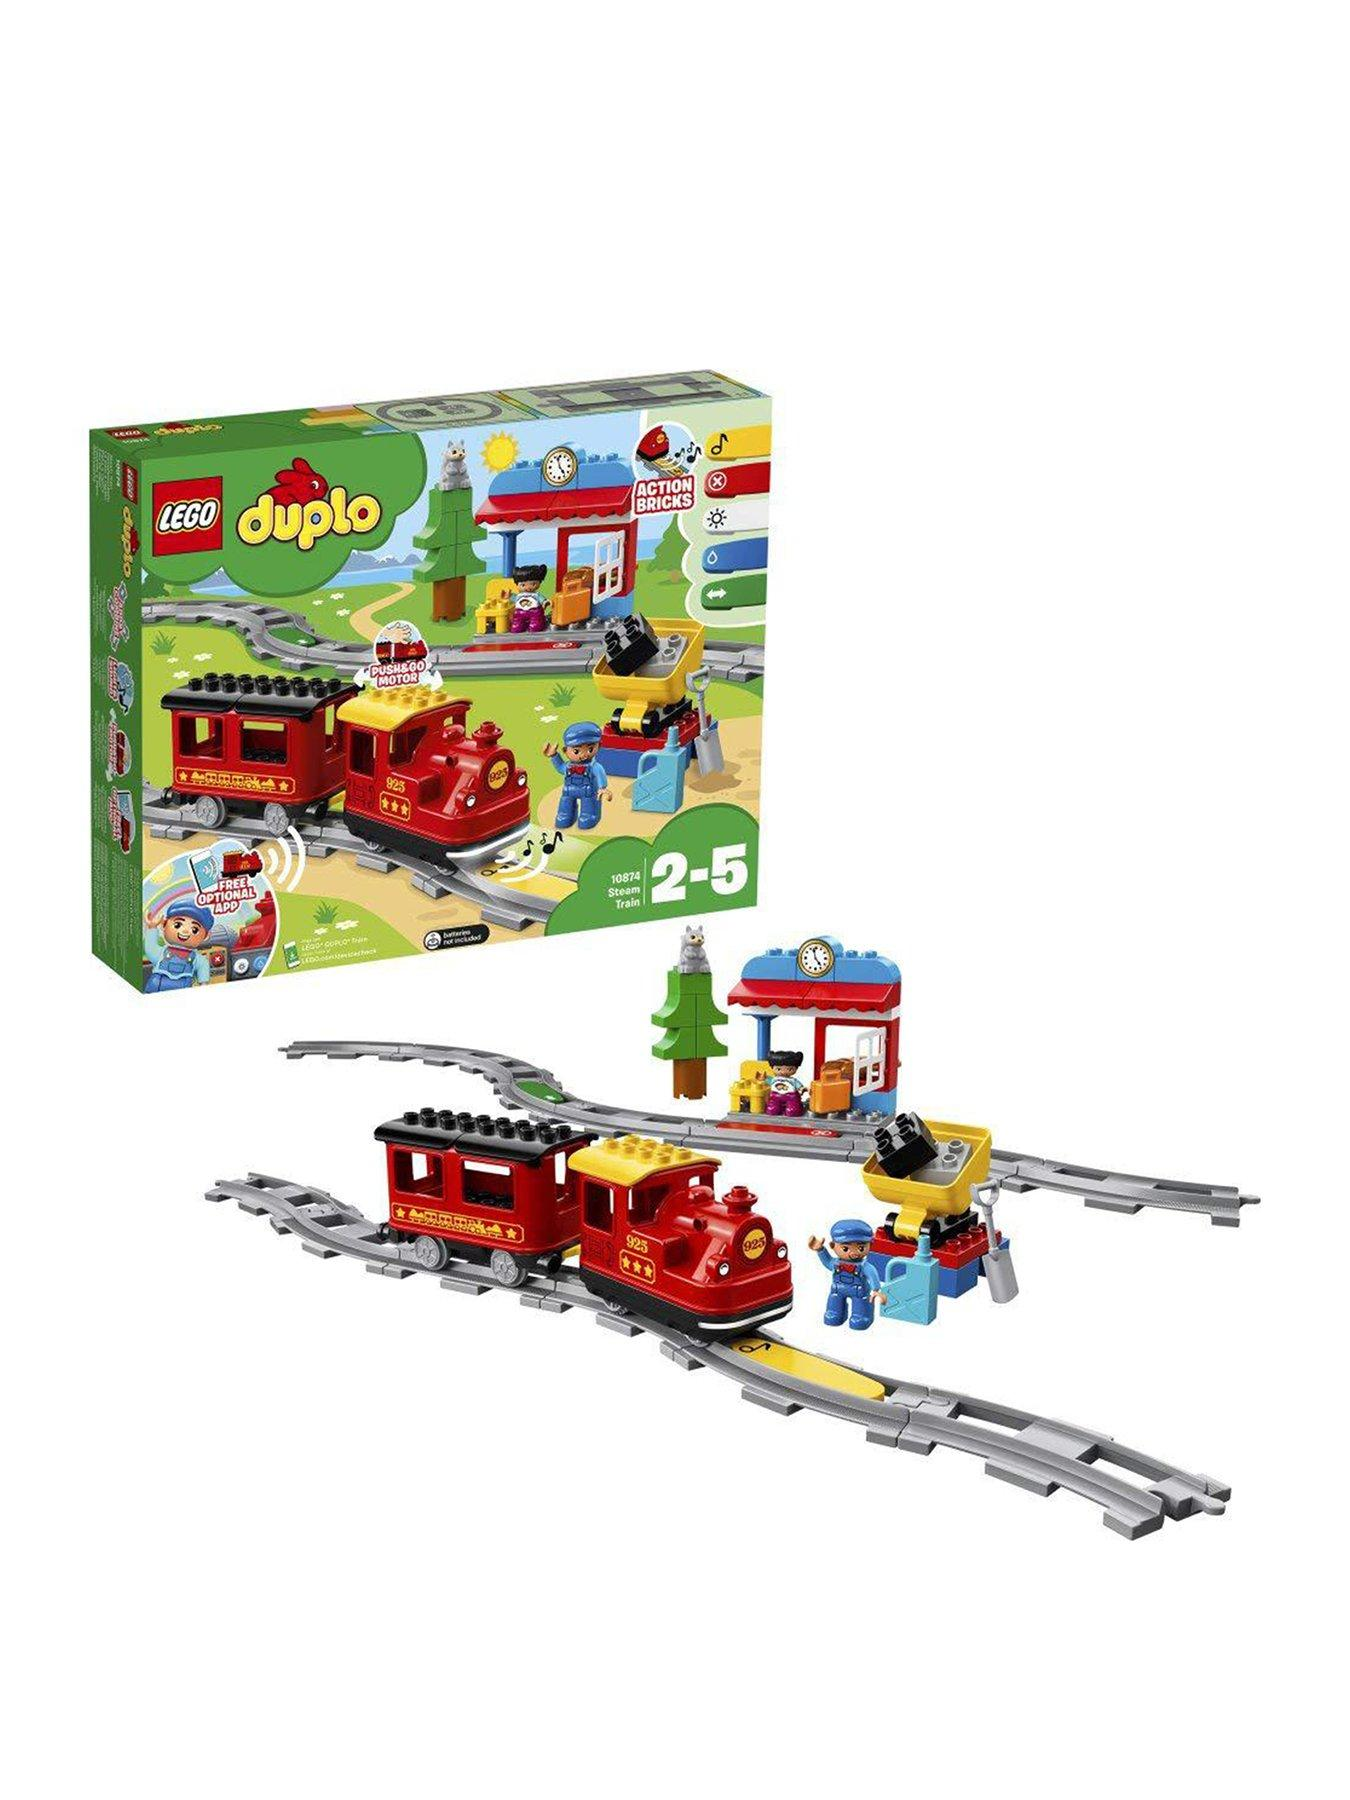 Lego Duplo Train Engineer/'s Cab Red//Yellow